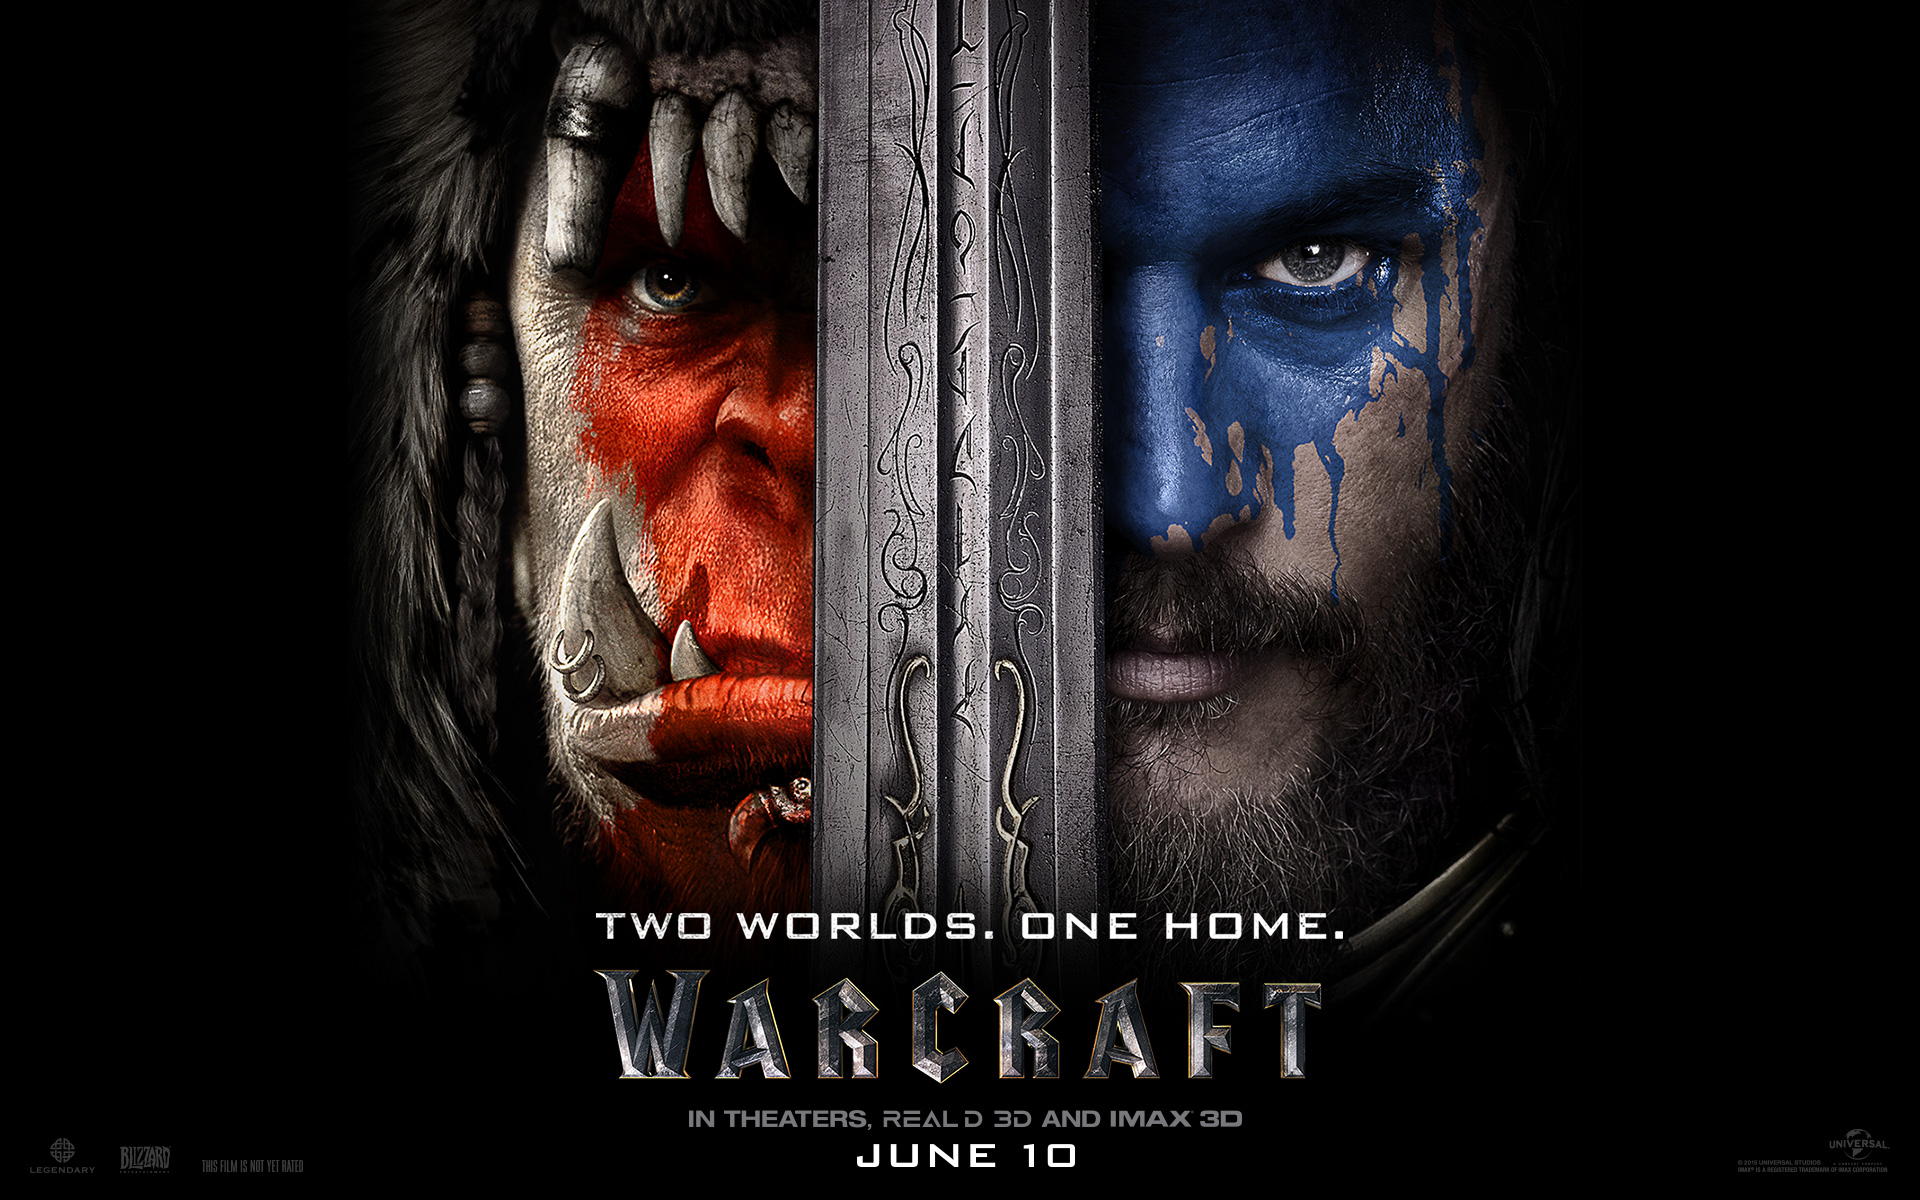 Standardní tapeta k filmu Warcraft